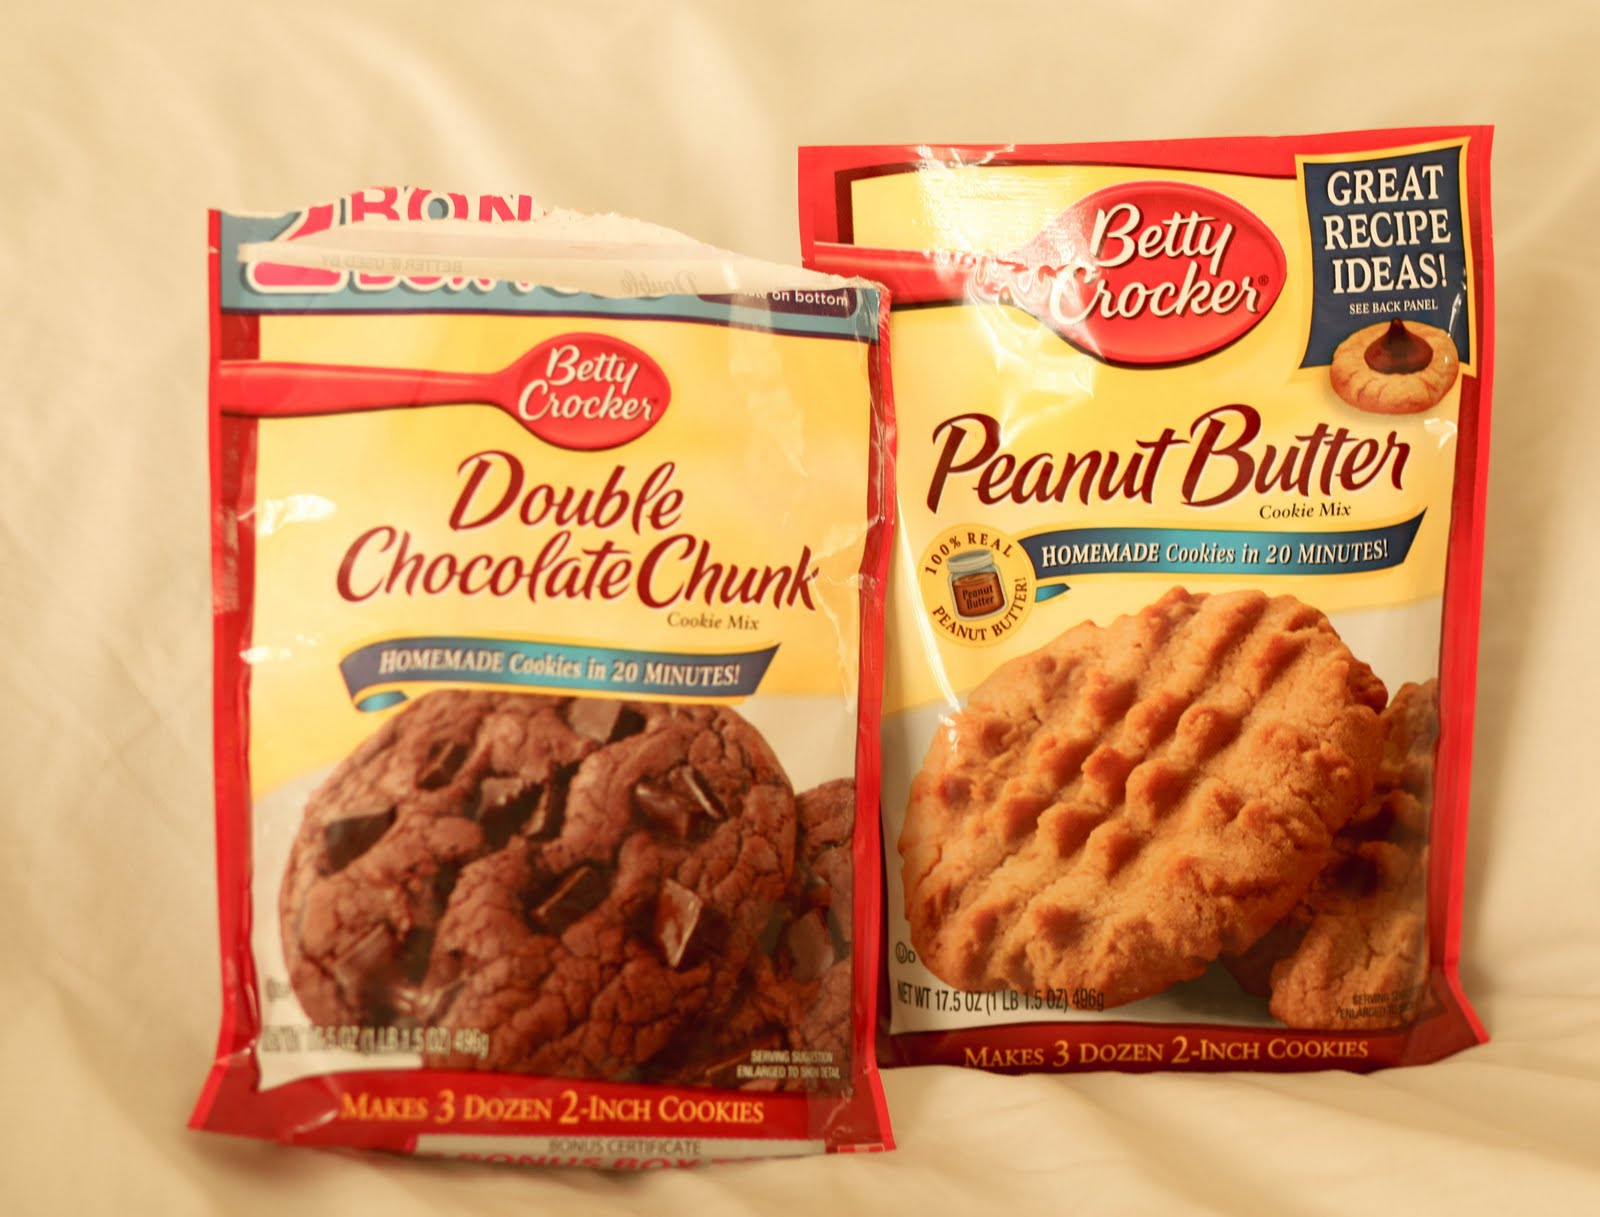 Chocolate monday mix them according to the directions or make your own cookie dough it works best to bake them in individual pans like they do at bjs solutioingenieria Images